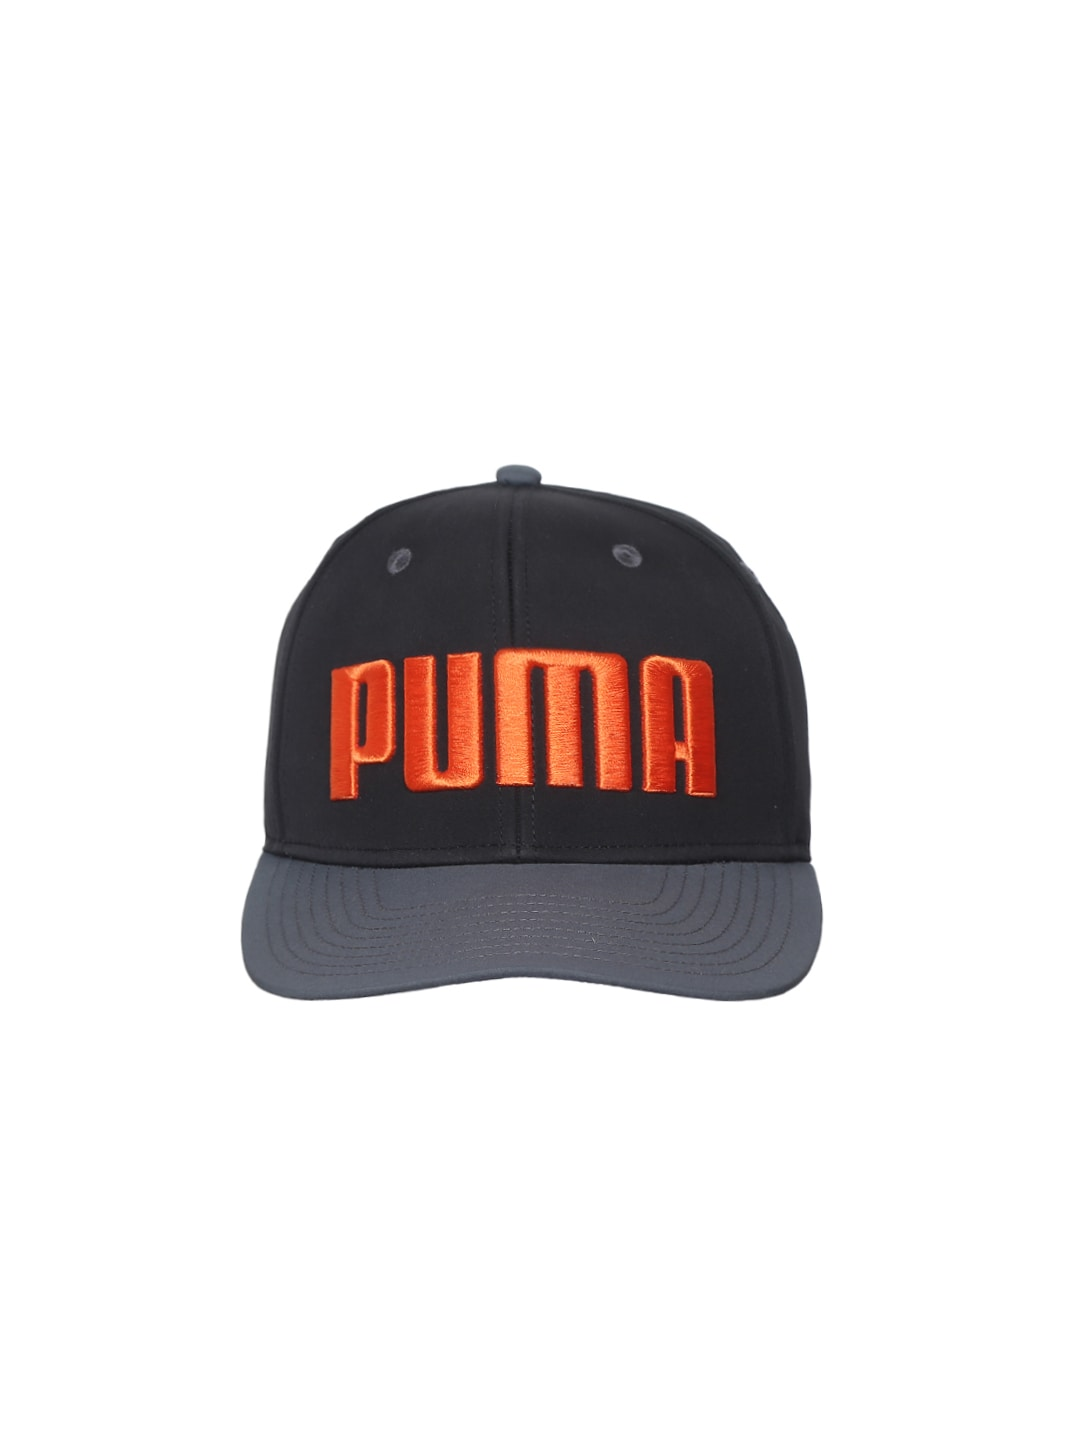 a95ed923a38 Puma Cap Hat - Buy Puma Cap Hat online in India